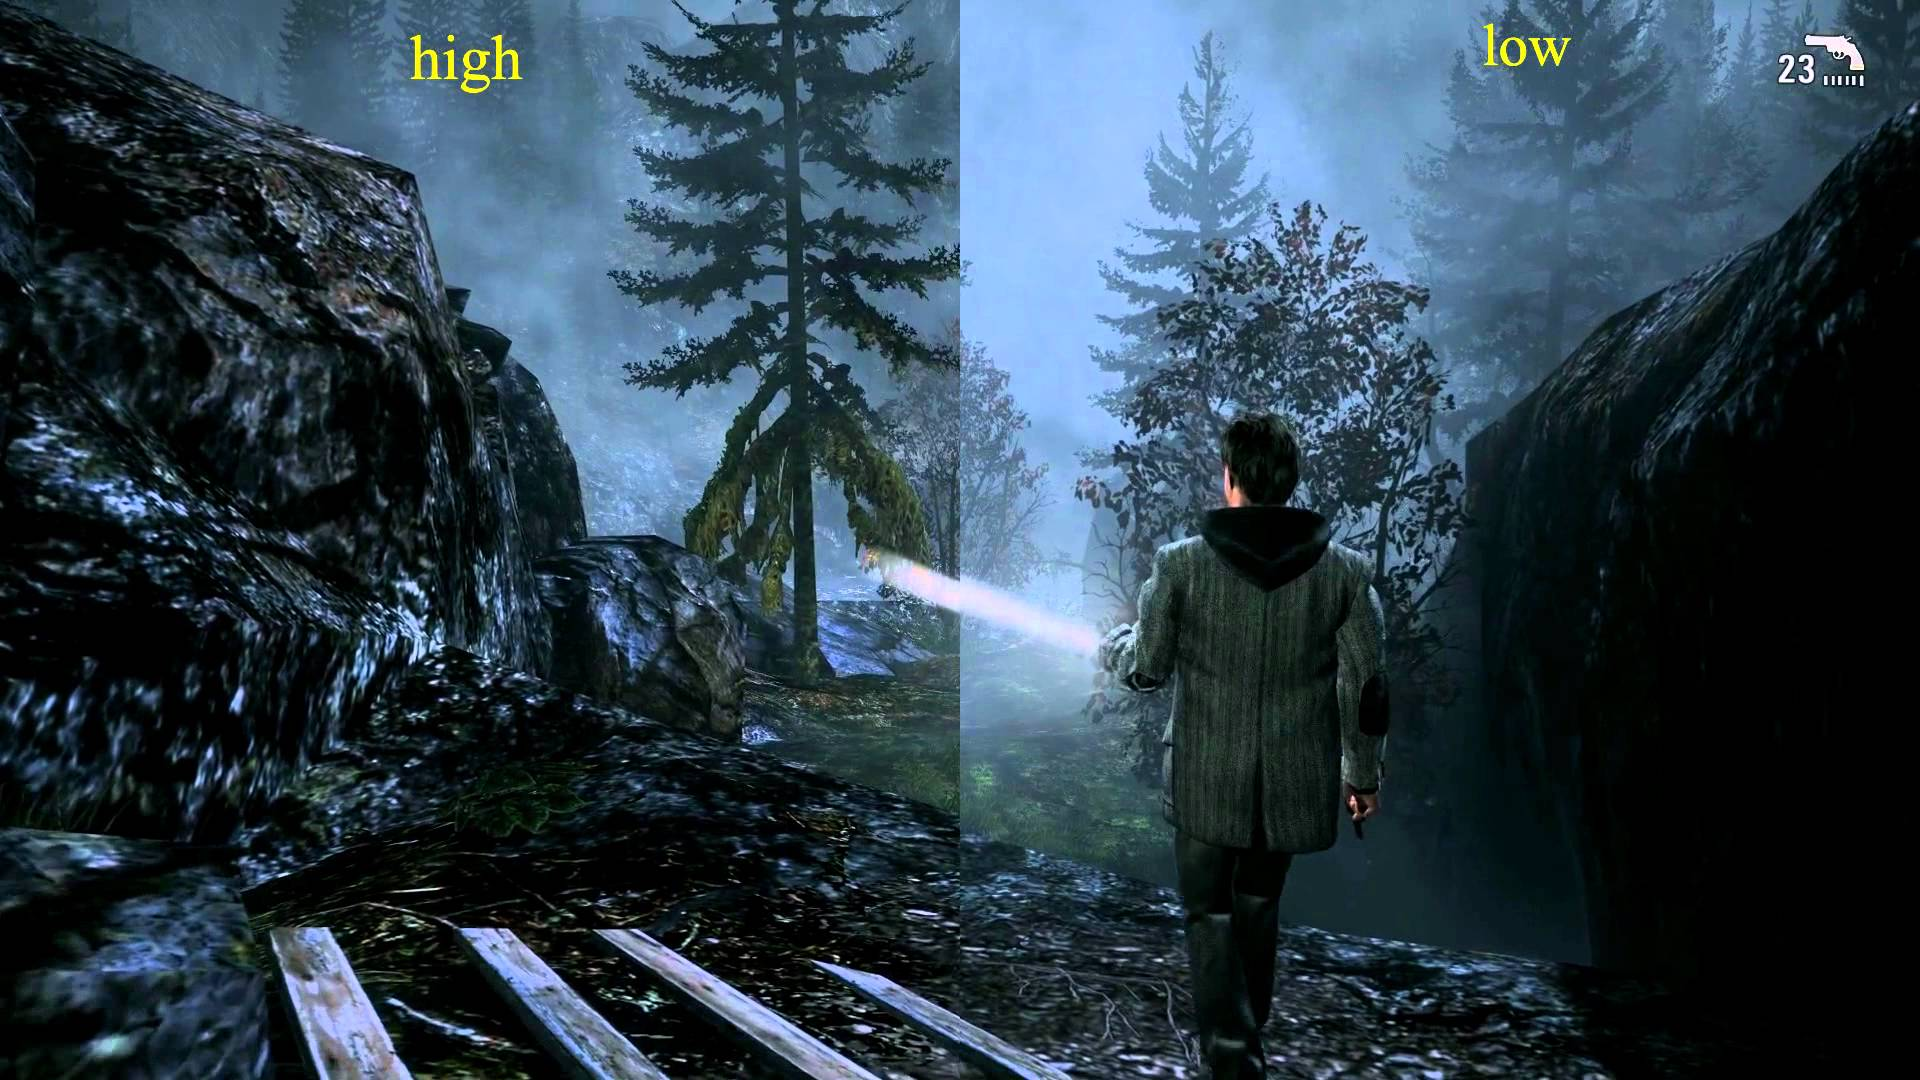 Alan Wake - A Thriller and Mystery Narrative - Survivethis